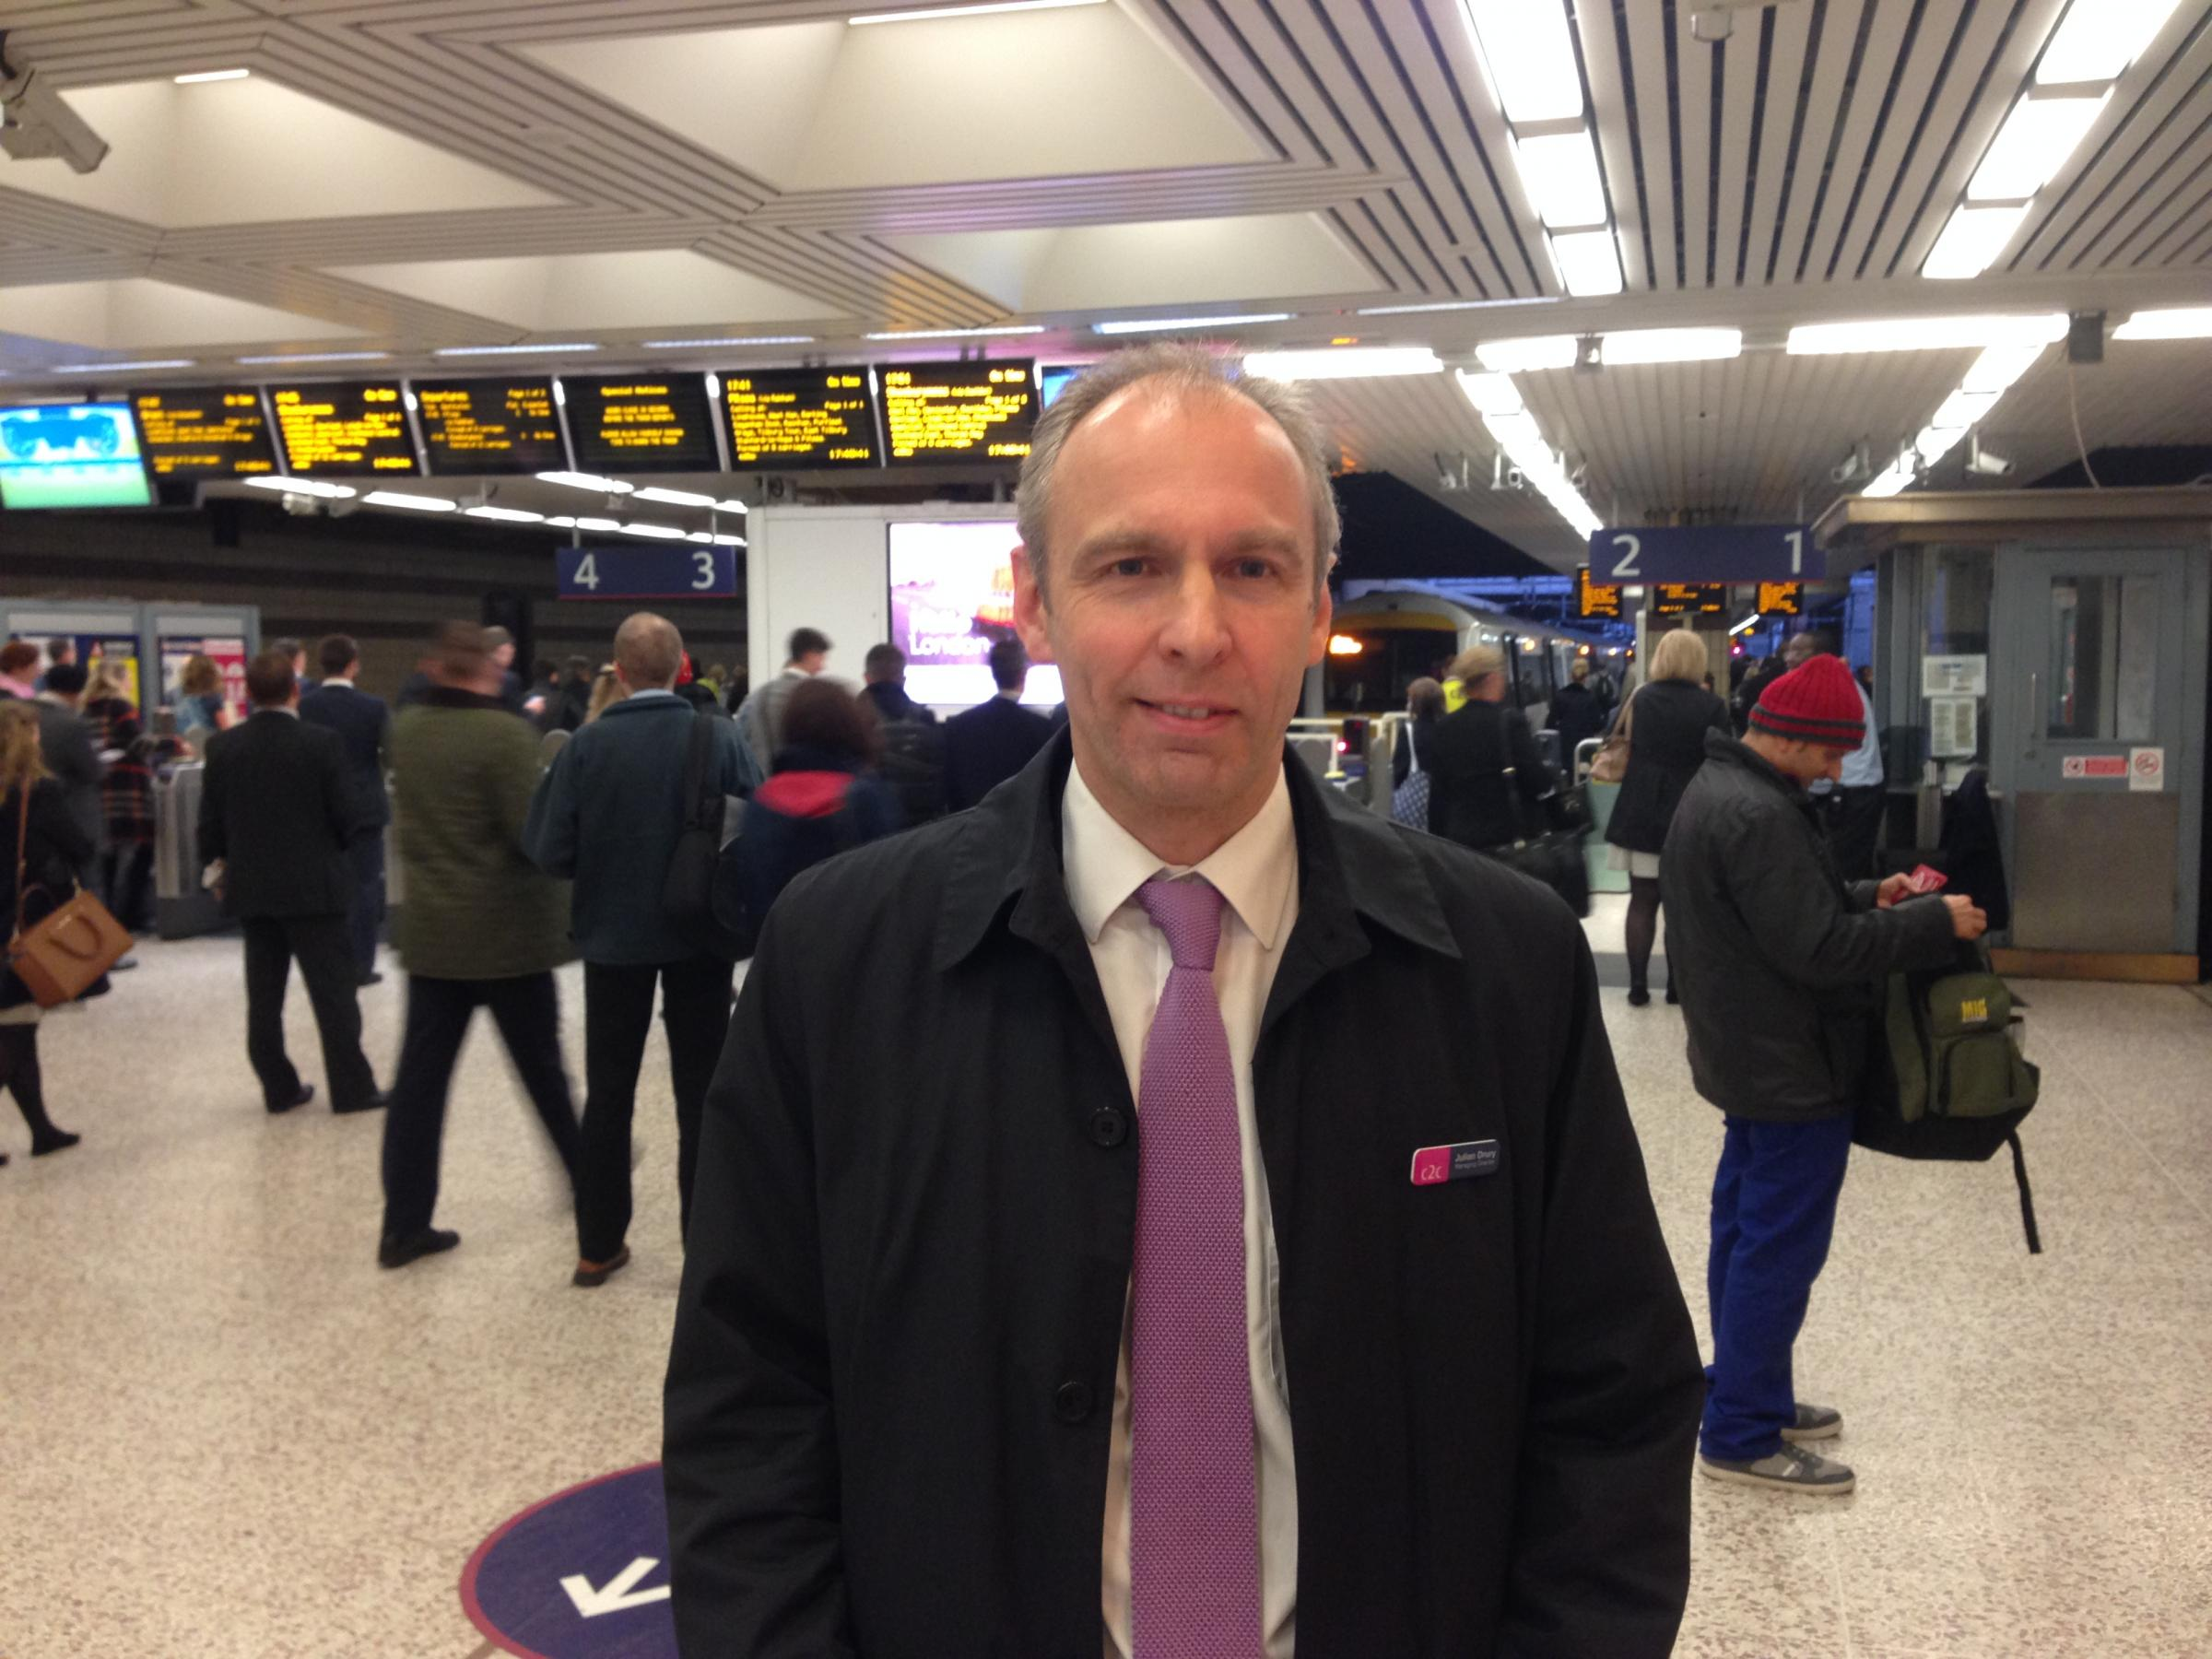 Commuter outrage shocks c2c boss